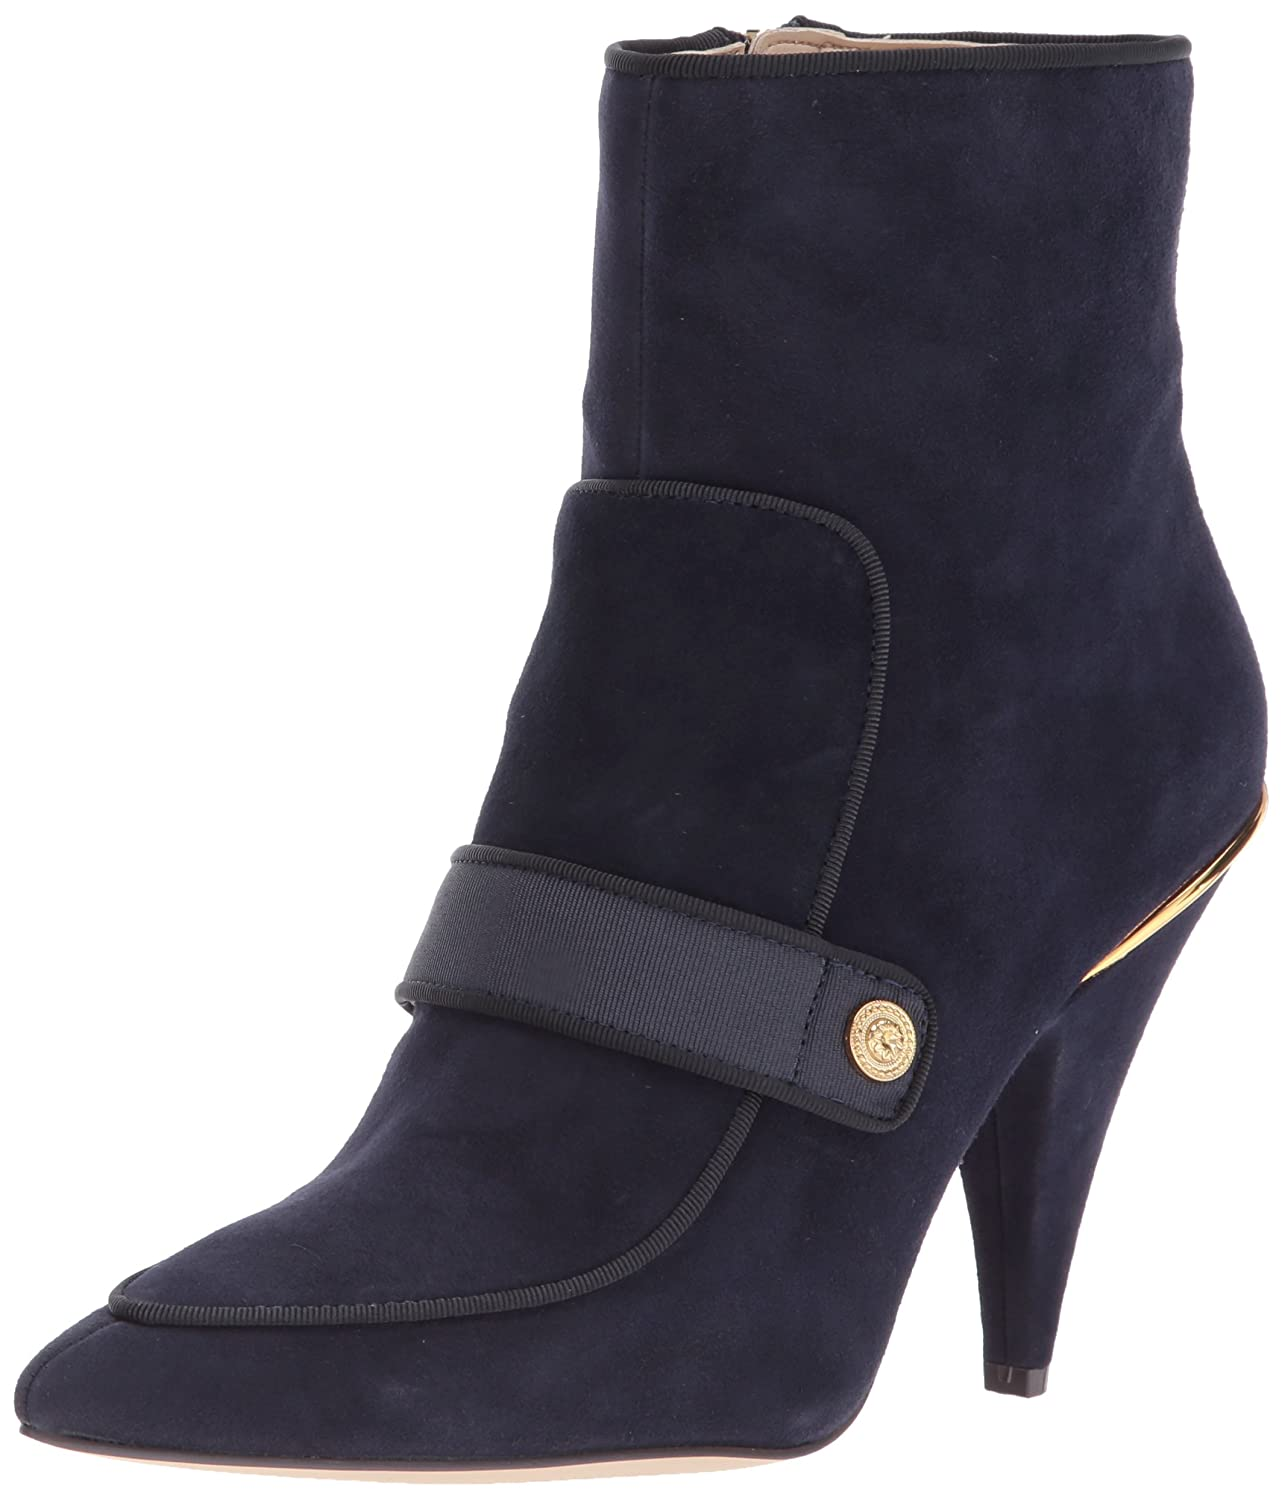 Nine West Women's Westham Fabric Ankle Boot B072FCSVB1 6 B(M) US|Navy Multi